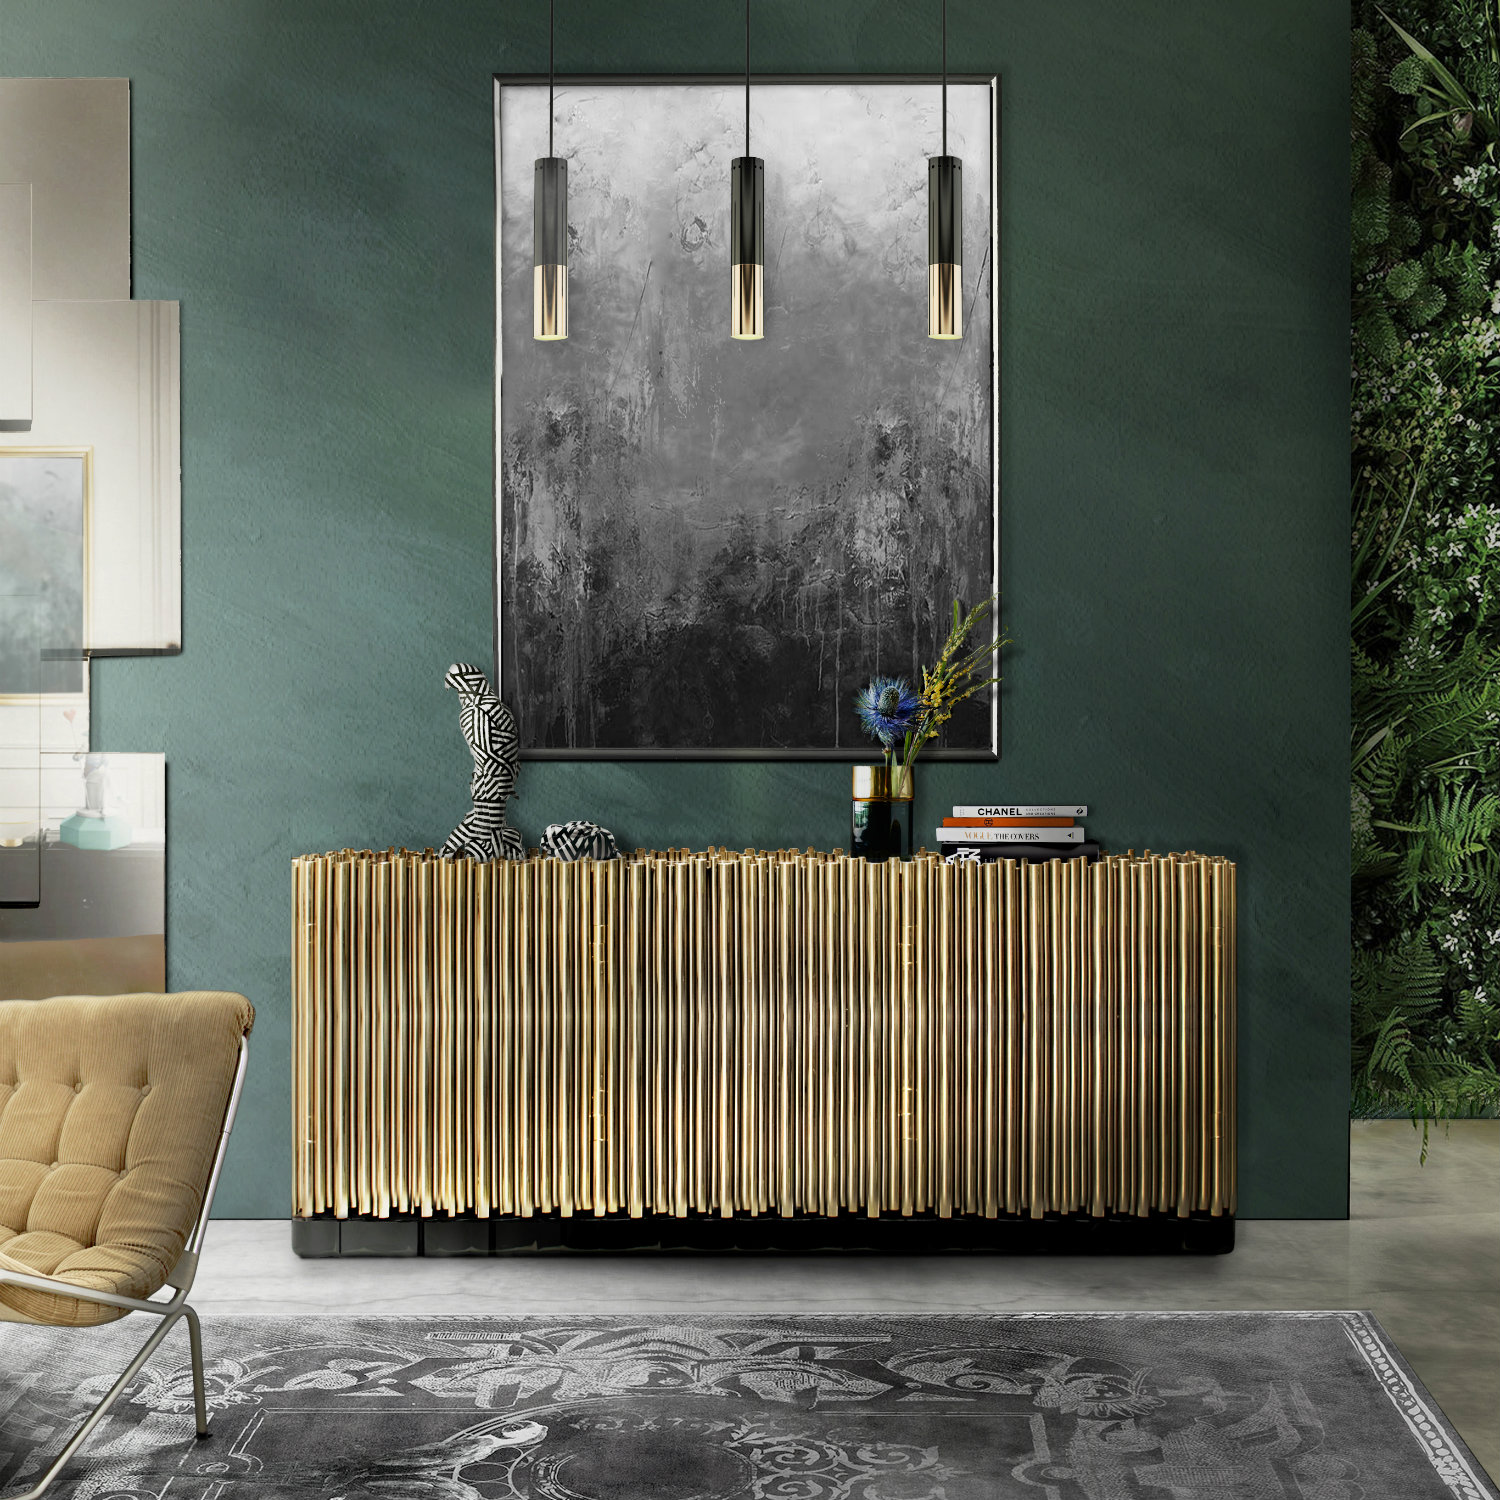 2018 trends 2018 Trends: The Return of Brass with Amazing Sideboards symphony sideboard